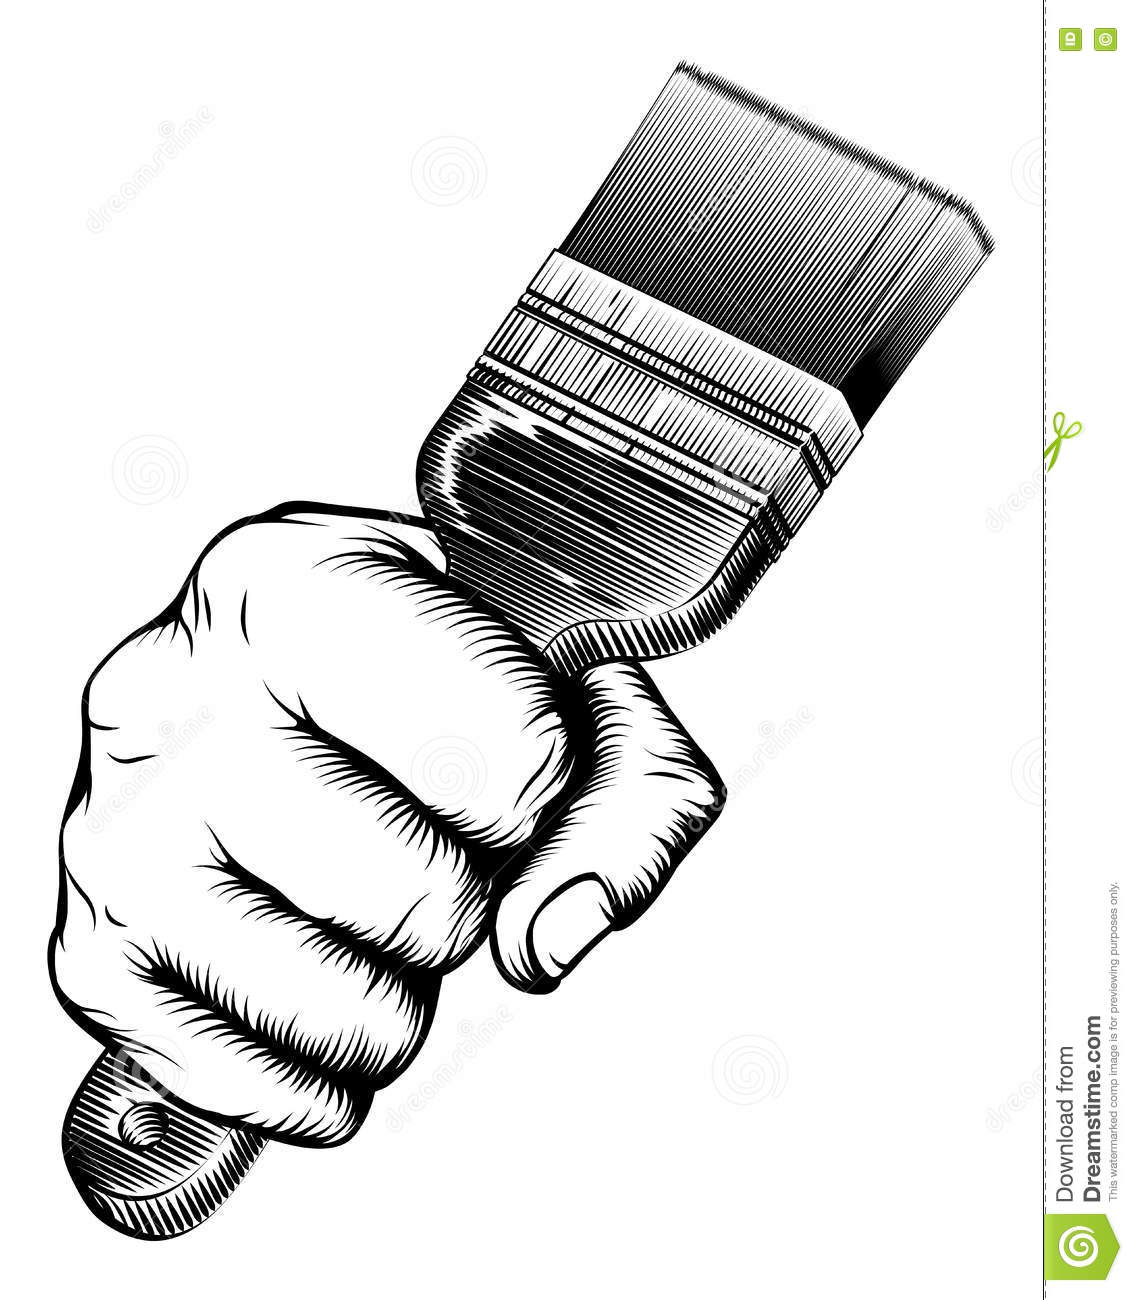 Malerpinsel Clipart Woodcut Fist Hand Holding Paintbrush Vector Illustration